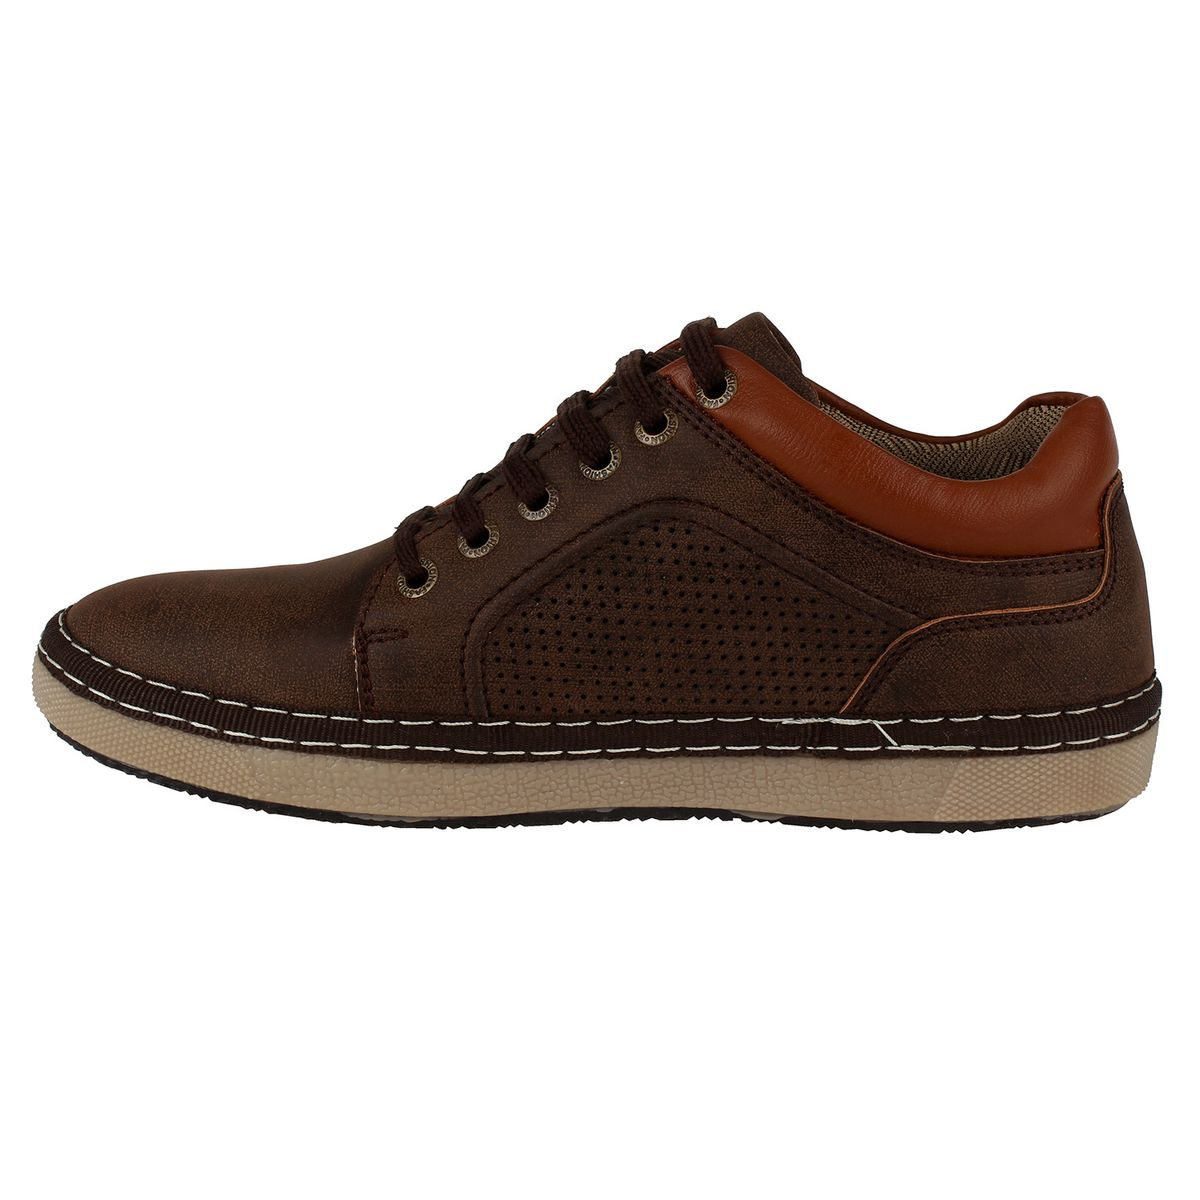 Sindrella Steps Brown Casual Shoes For Men